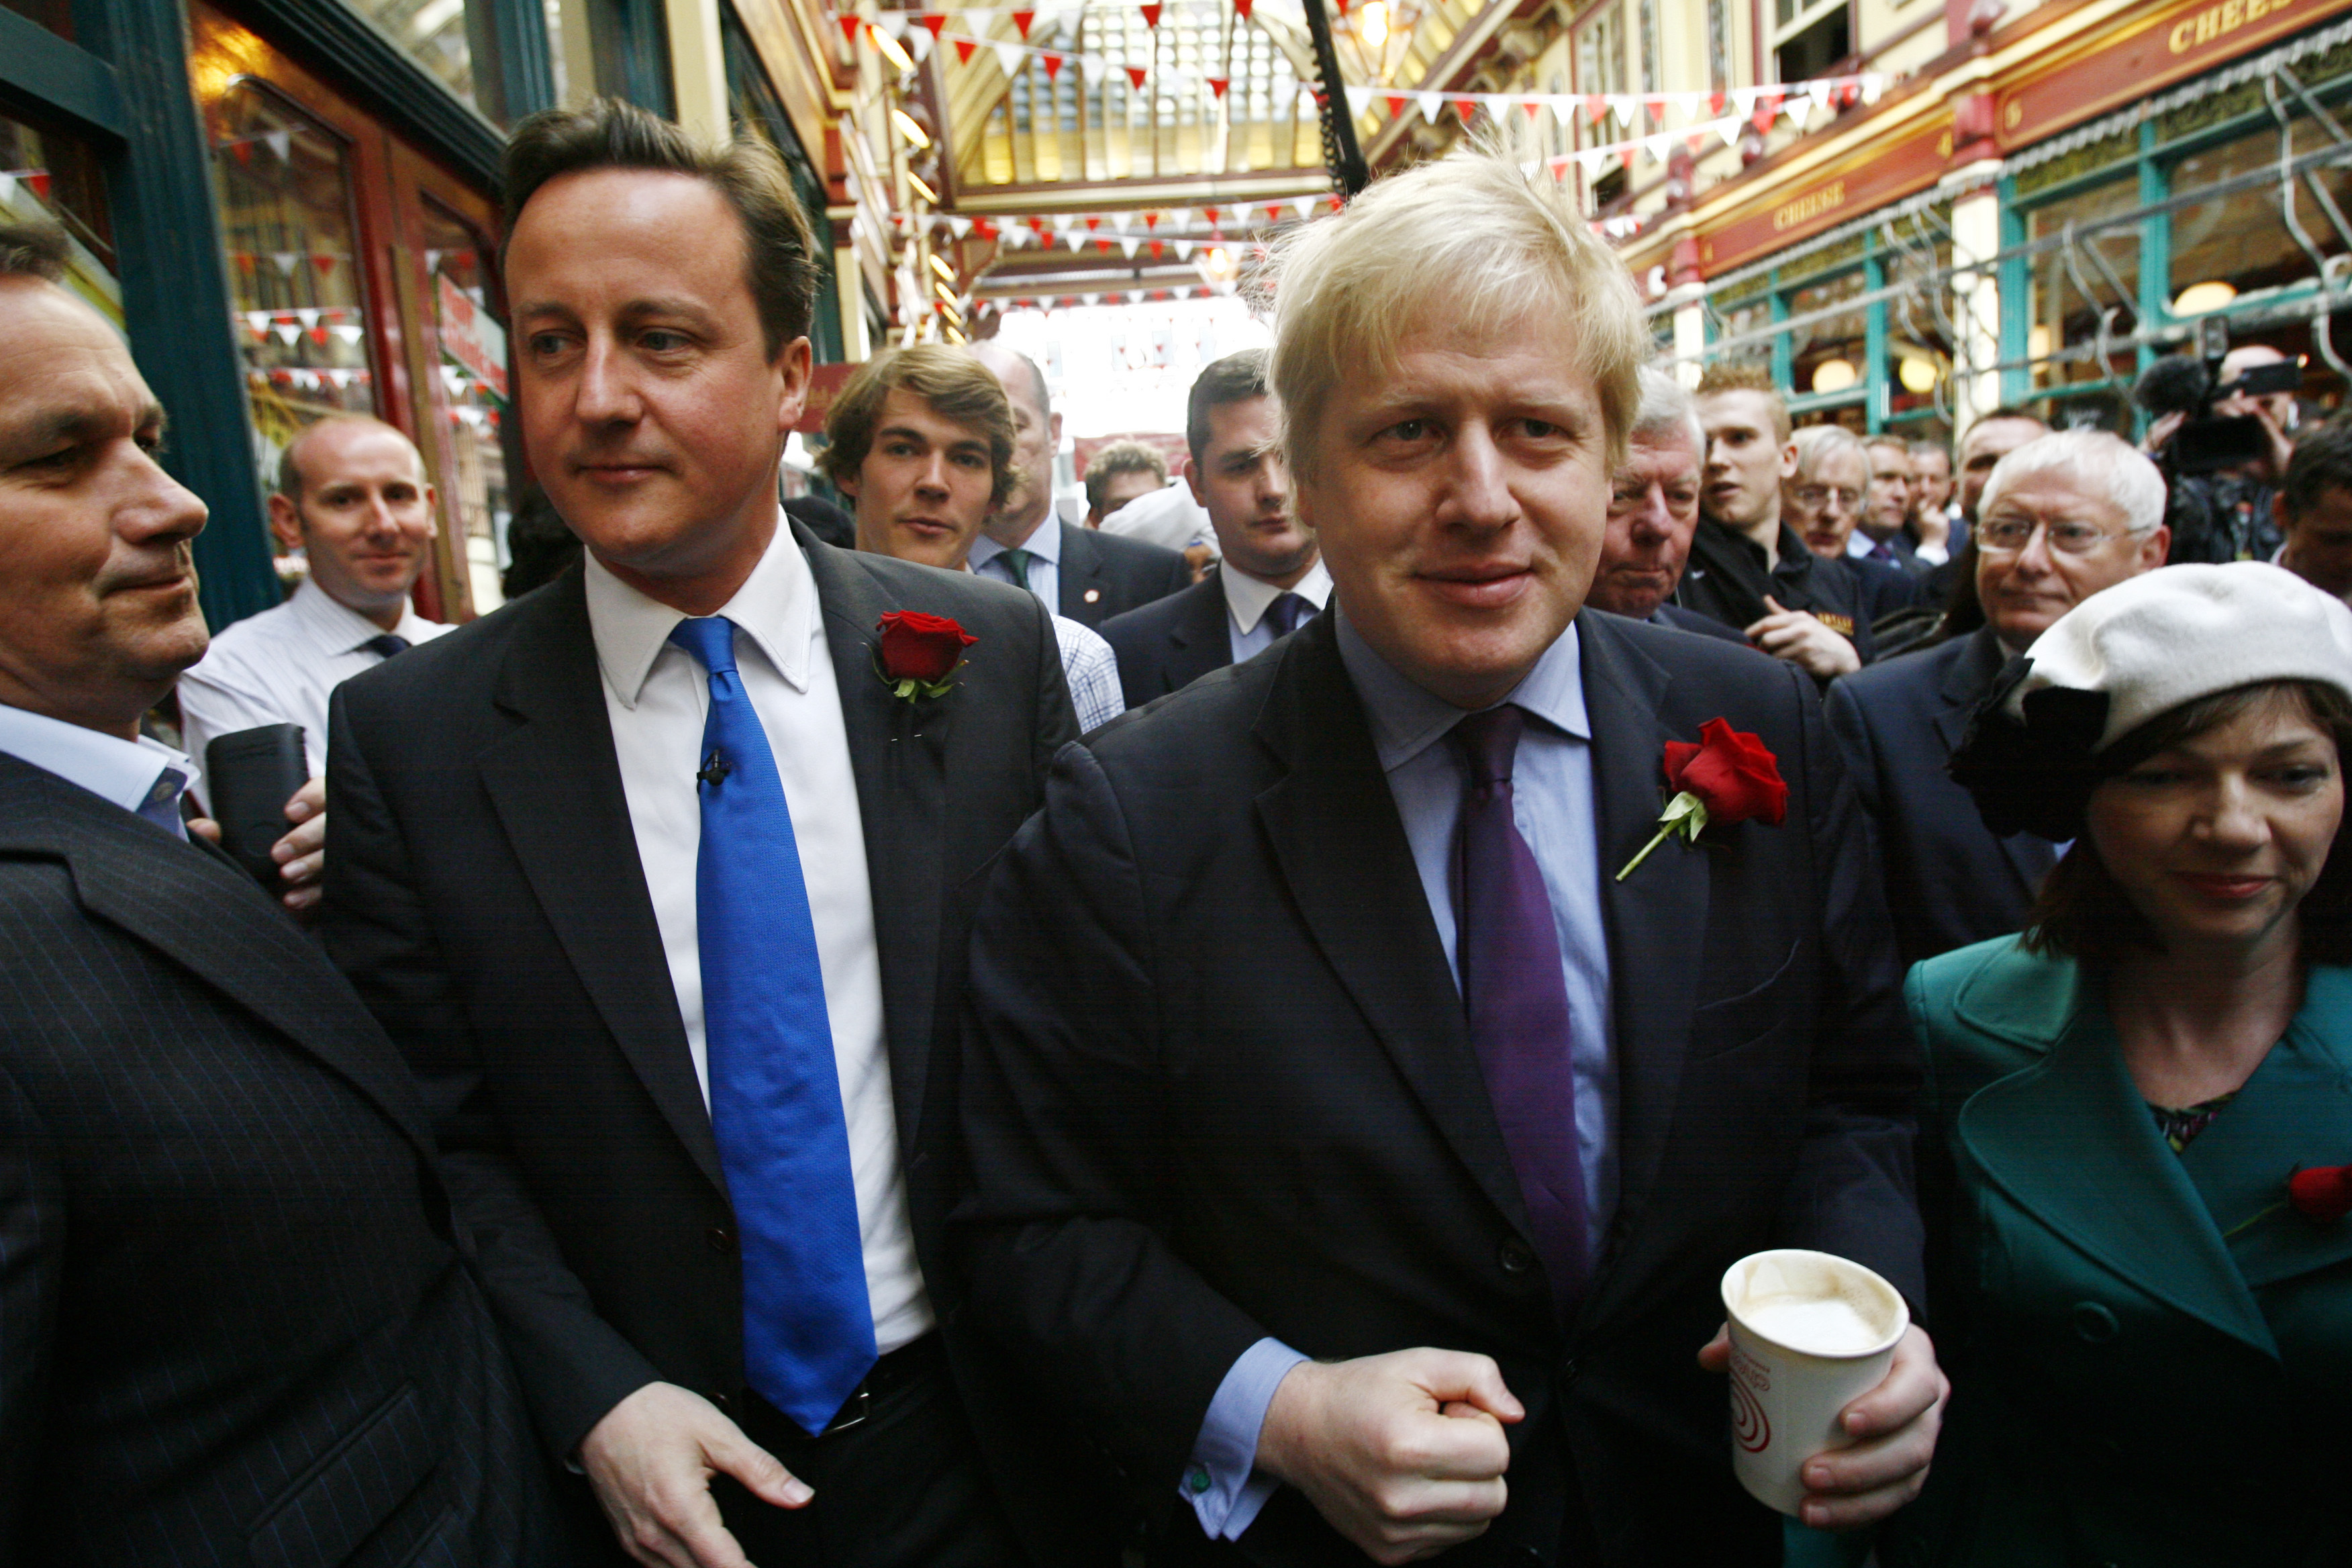 Conservative Party leader David Cameron and the Mayor of London Boris Johnson celebrate St George's Day at Leadenhall Market in the City of London. PRESS ASSOCIATION Photo. Picture date: Friday April 23, 2010. See PA story ELECTION Tories. Photo credit should read: Johnny Green/PA Wire